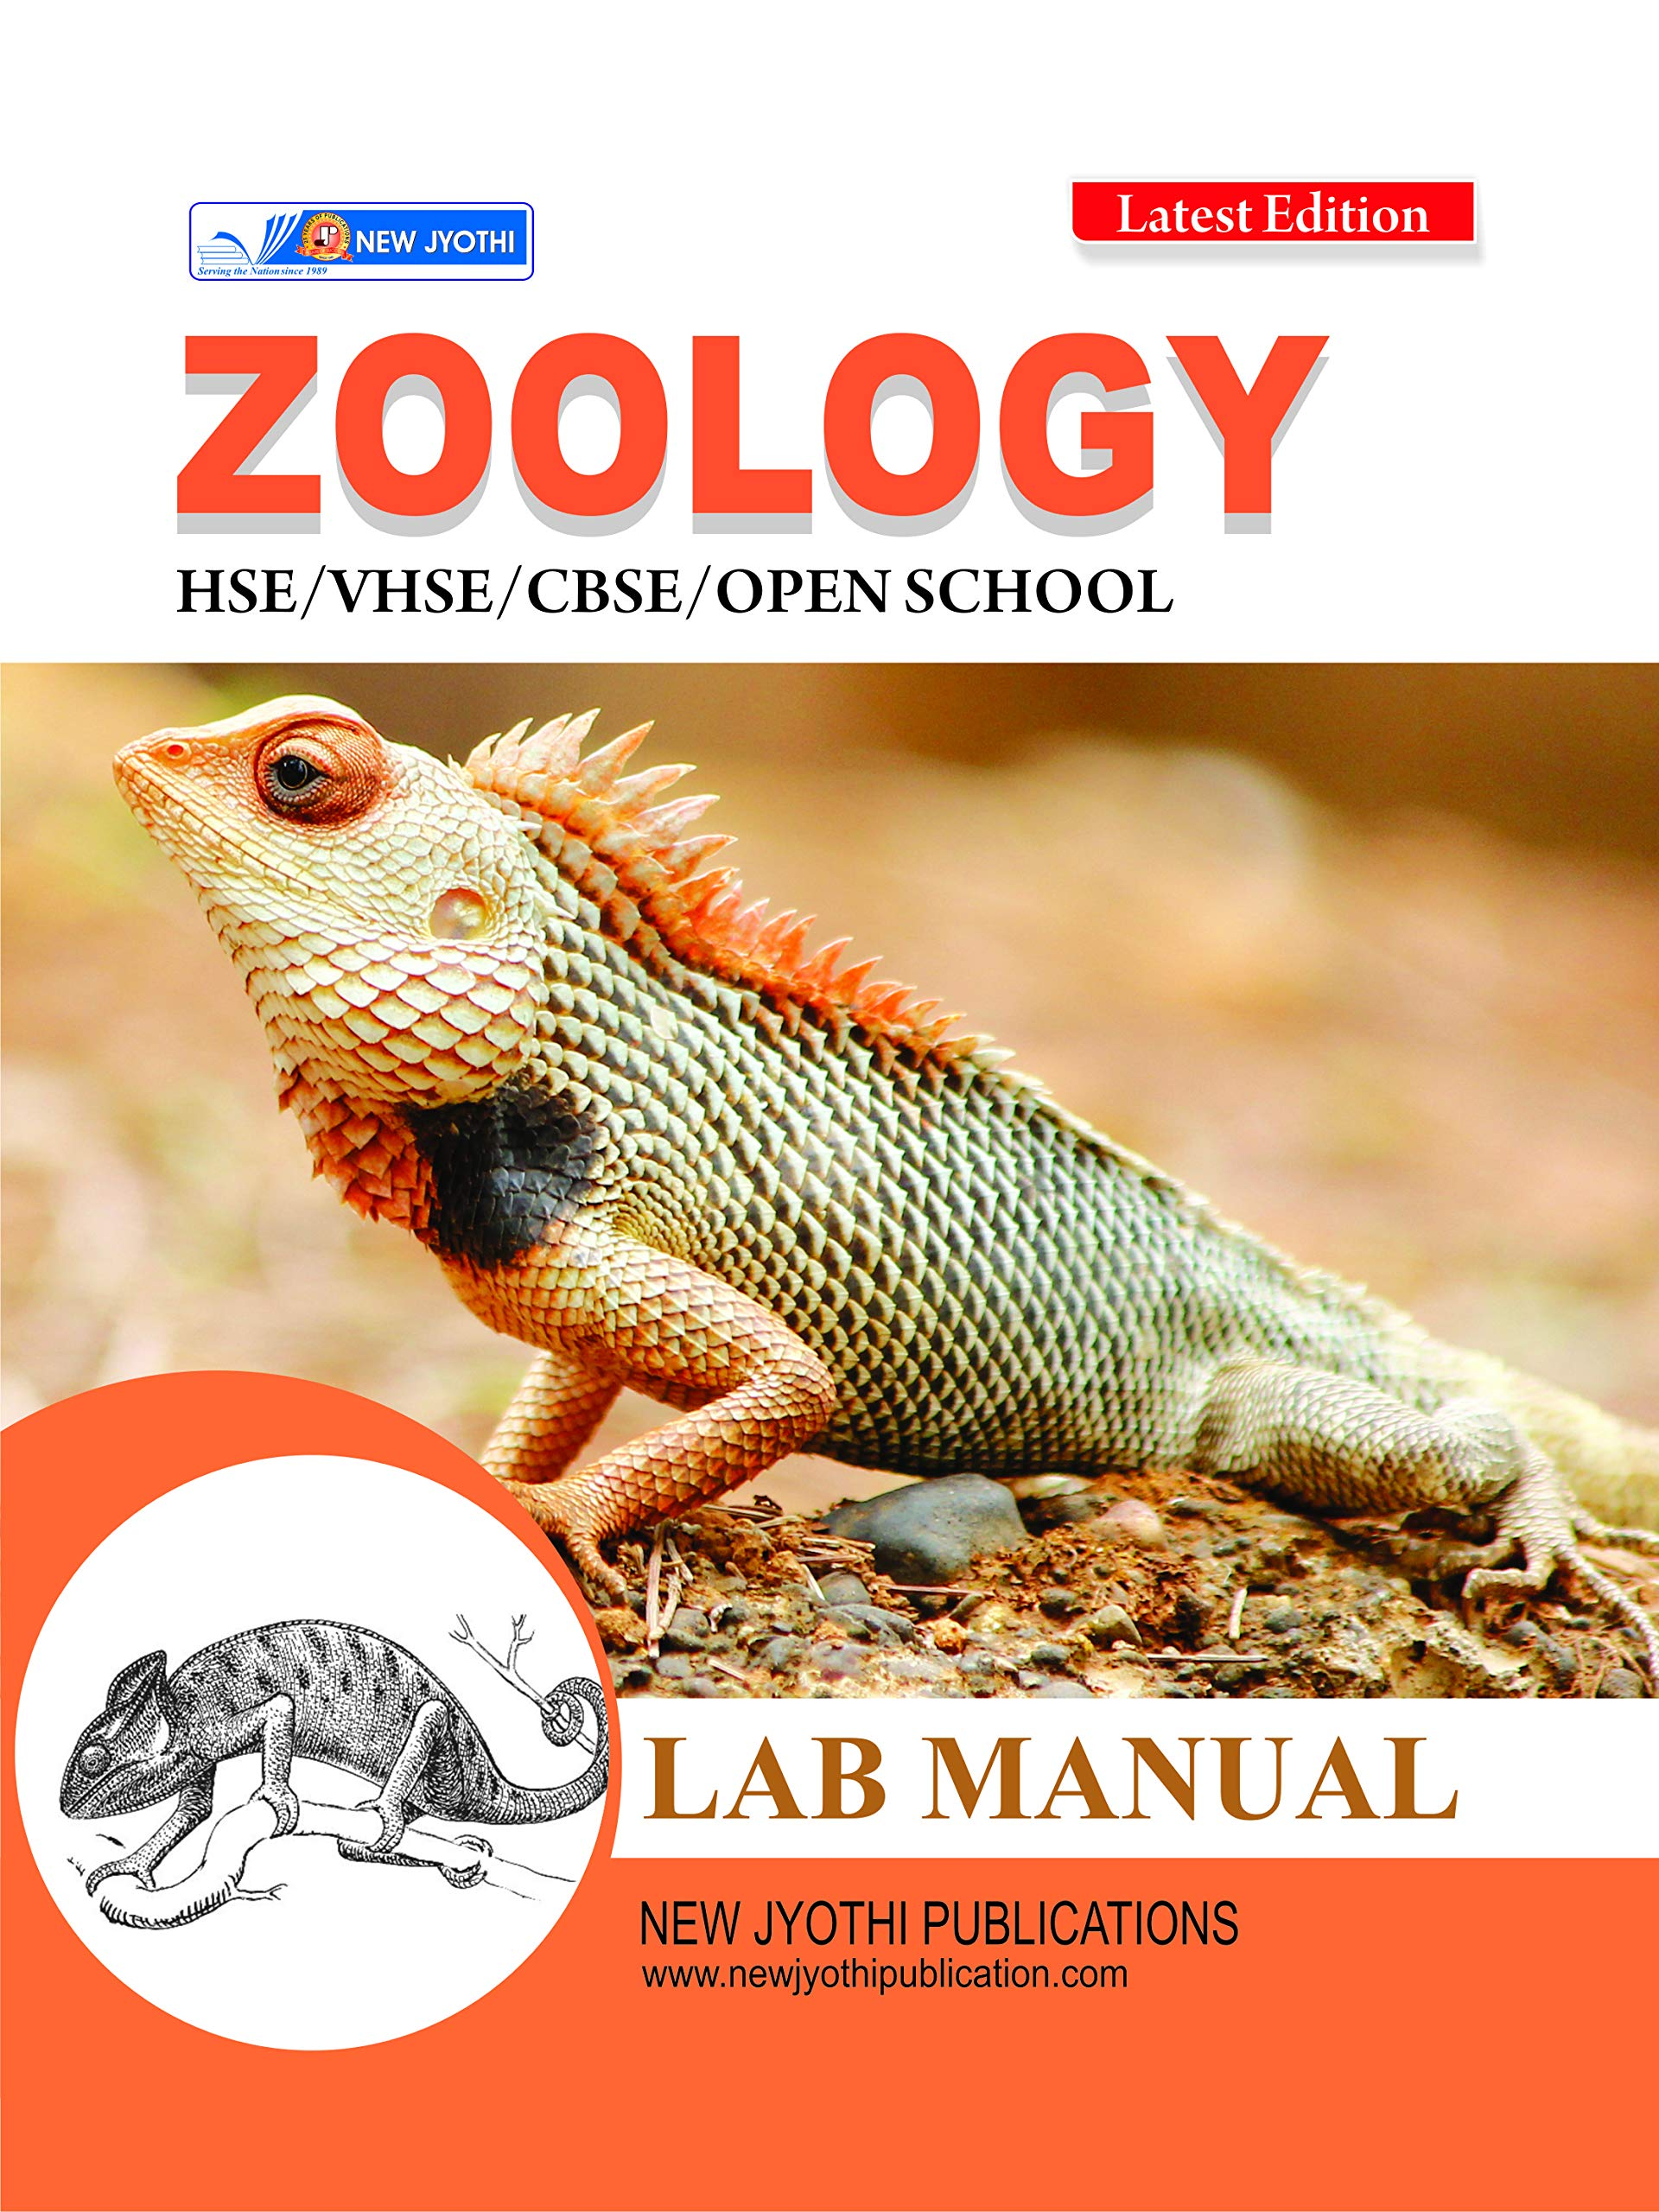 Buy Zoology Lab Manual By New Jyothi Publications Book Online at Low Prices  in India | Zoology Lab Manual By New Jyothi Publications Reviews & Ratings  ...